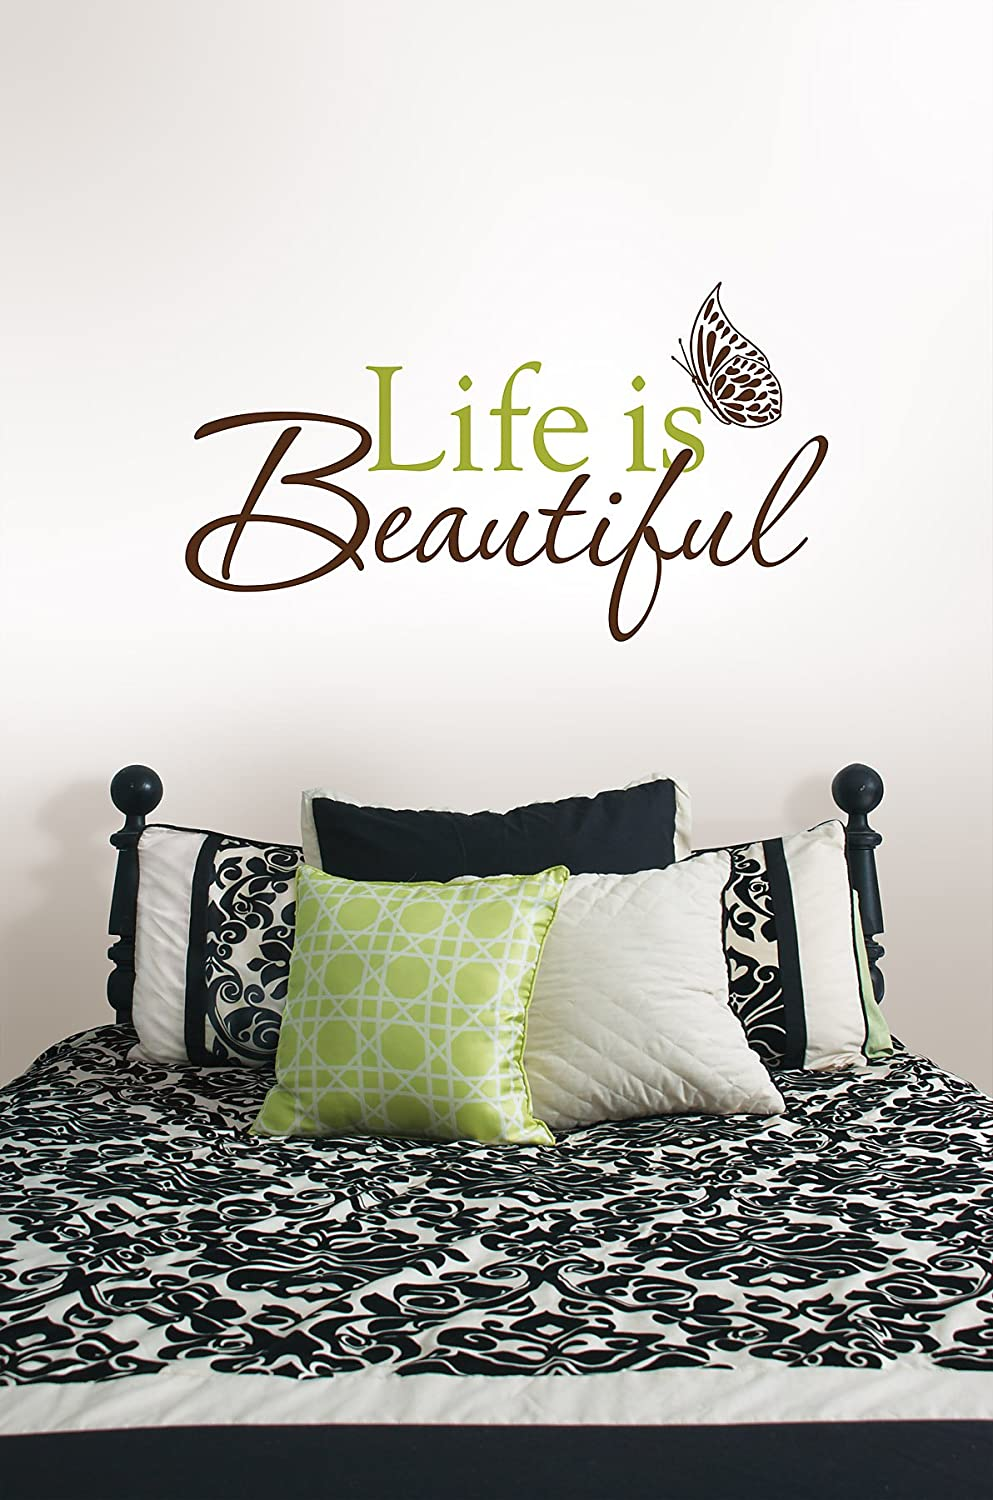 Exceptionnel Wall Pops WPQ96853 Peel U0026 Stick Life Is Beautiful Quotes Wall Decals 24.5  In X 13.5 In   Decorative Wall Appliques   Amazon.com